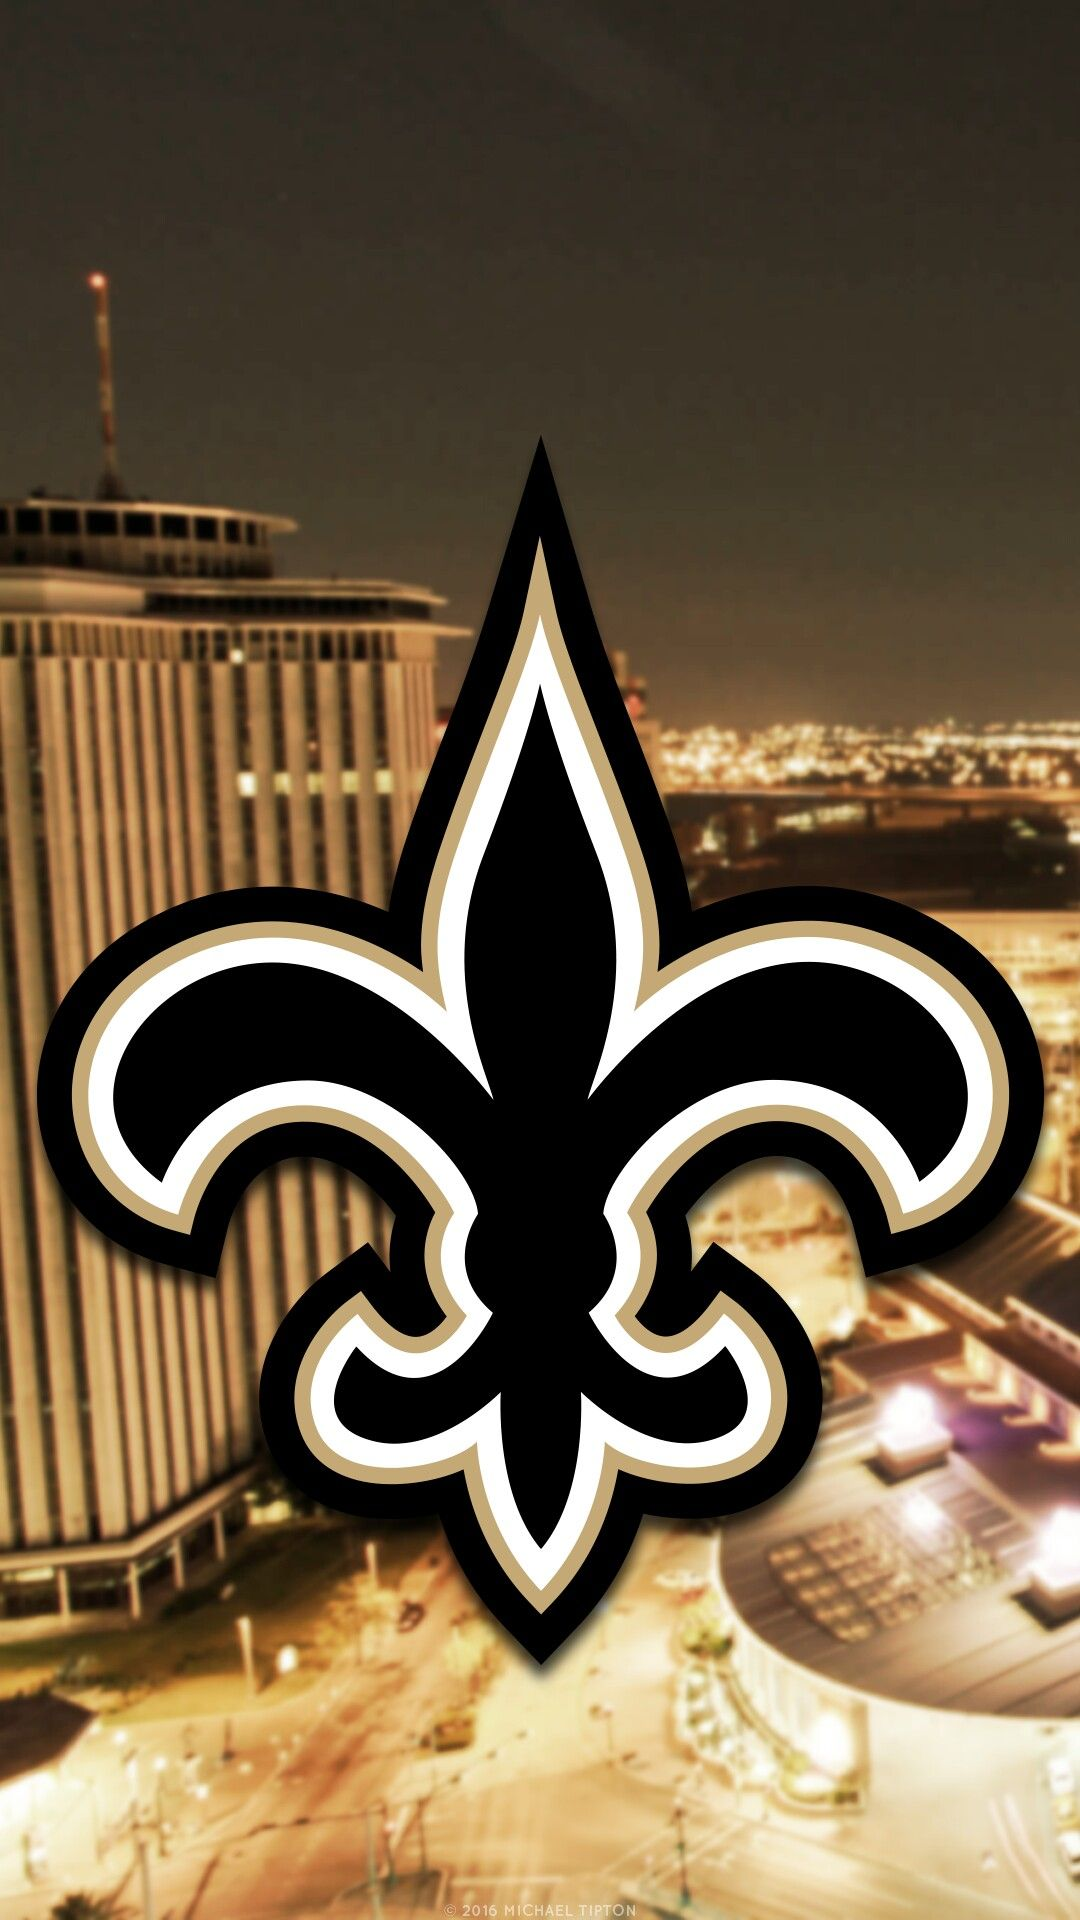 New Orleans Saints IPhone & Android Wallpaper. | My New Orleans Saints Diva Den | New Orleans ...